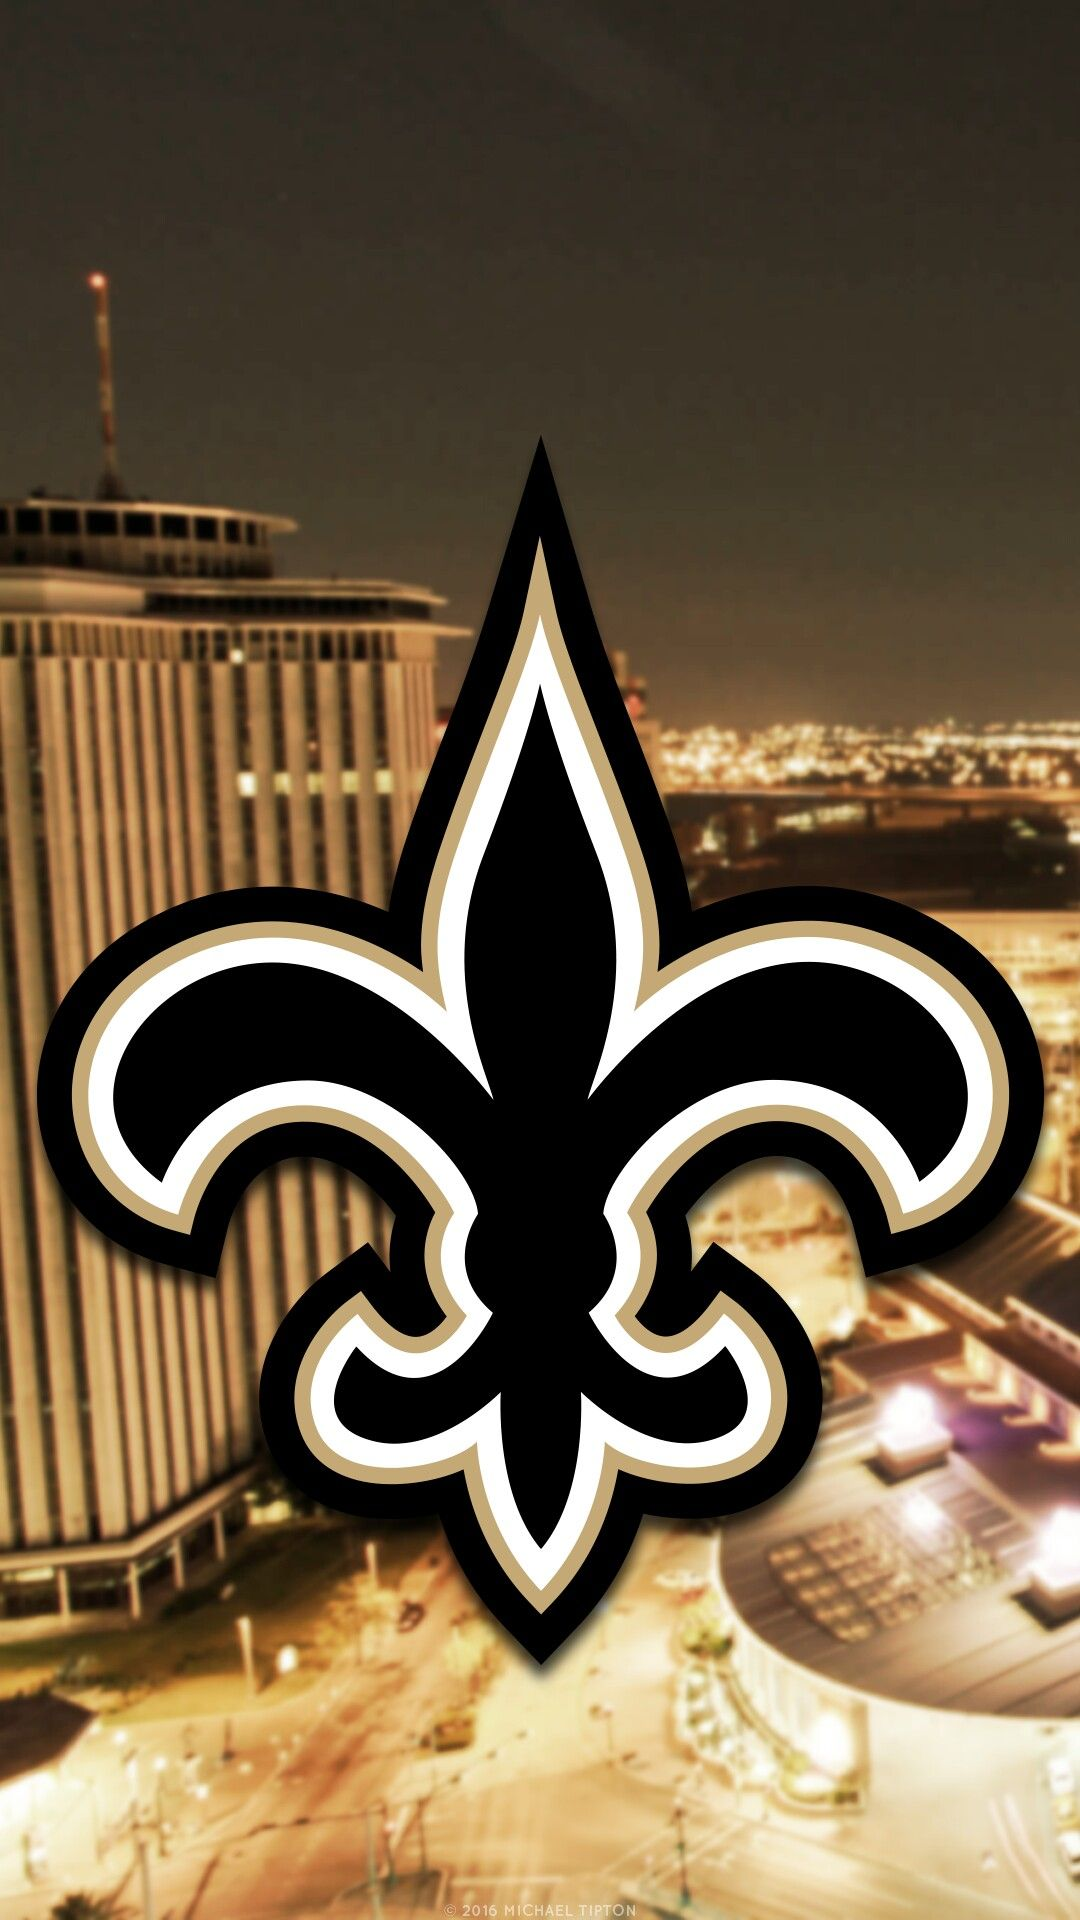 New Orleans Saints IPhone & Android Wallpaper. | My New Orleans Saints Diva Den | New Orleans ...